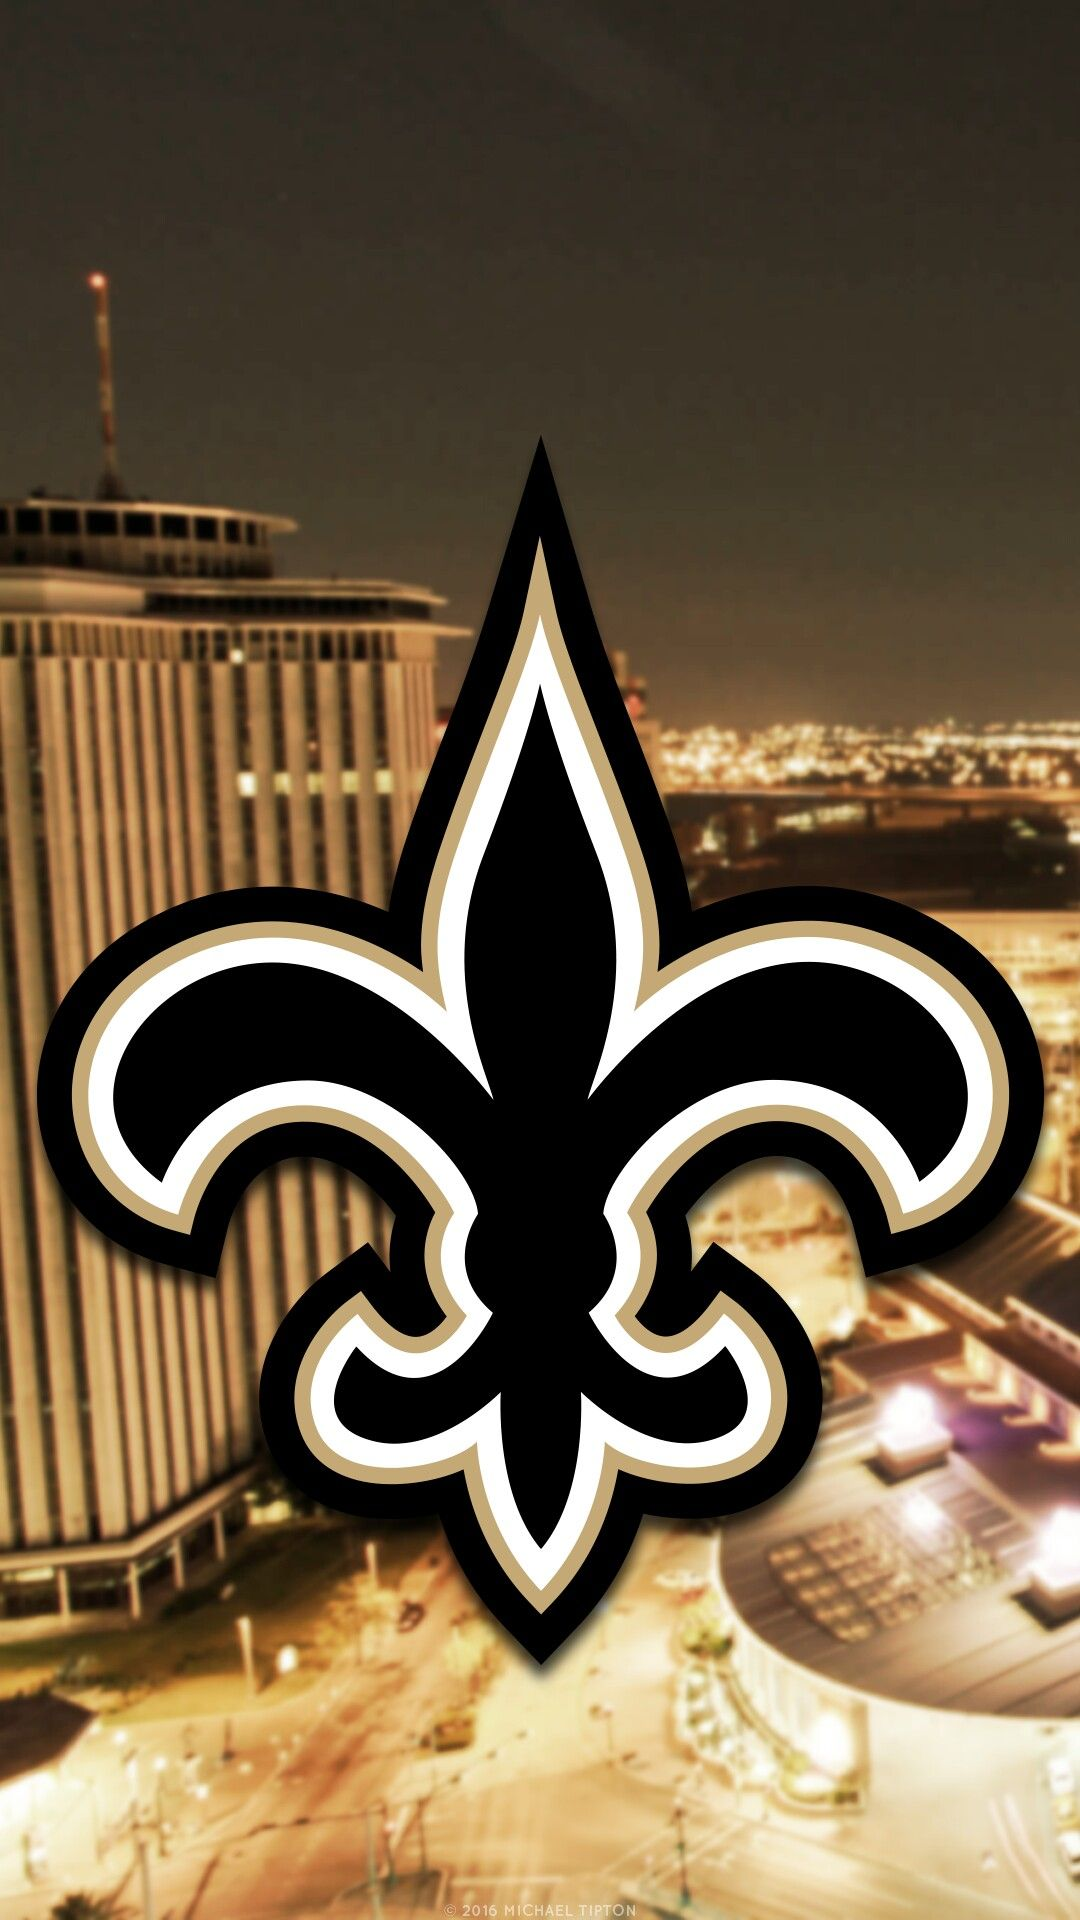 New Orleans Saints IPhone & Android Wallpaper. | My New Orleans Saints Diva Den | New Orleans ...